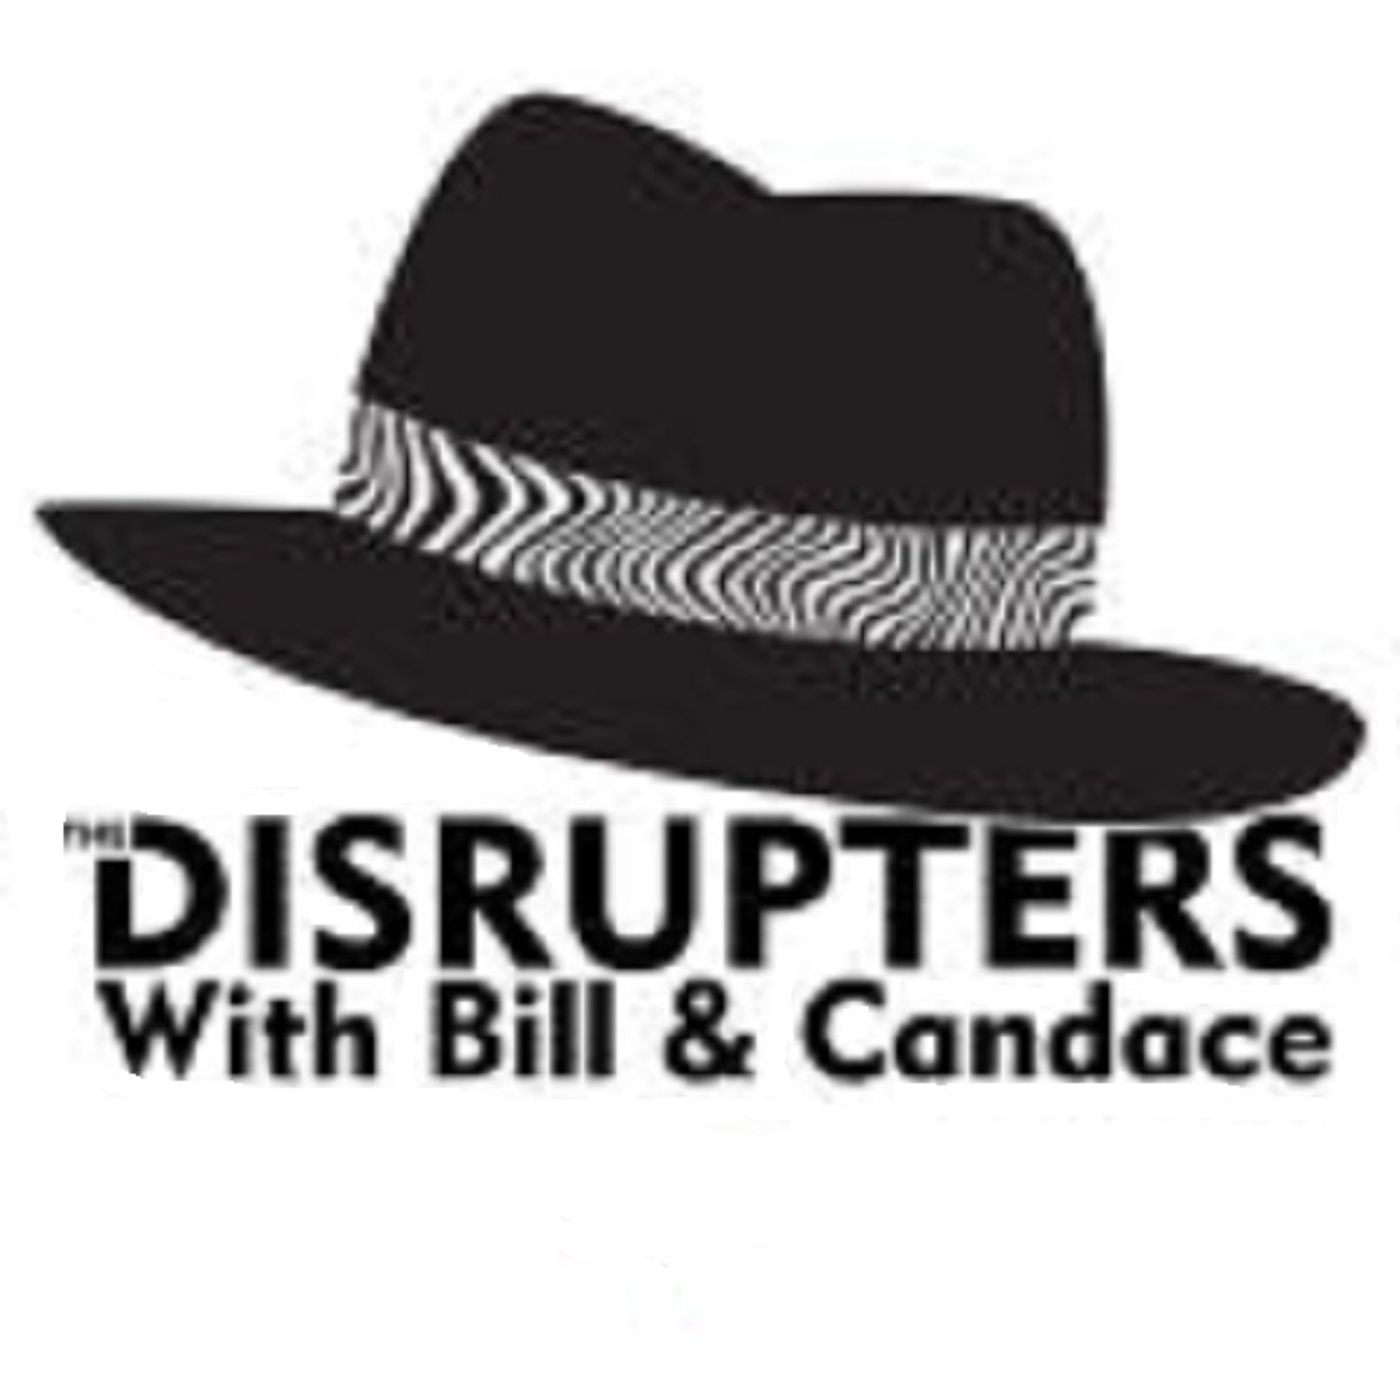 The Return Of the Disrupters